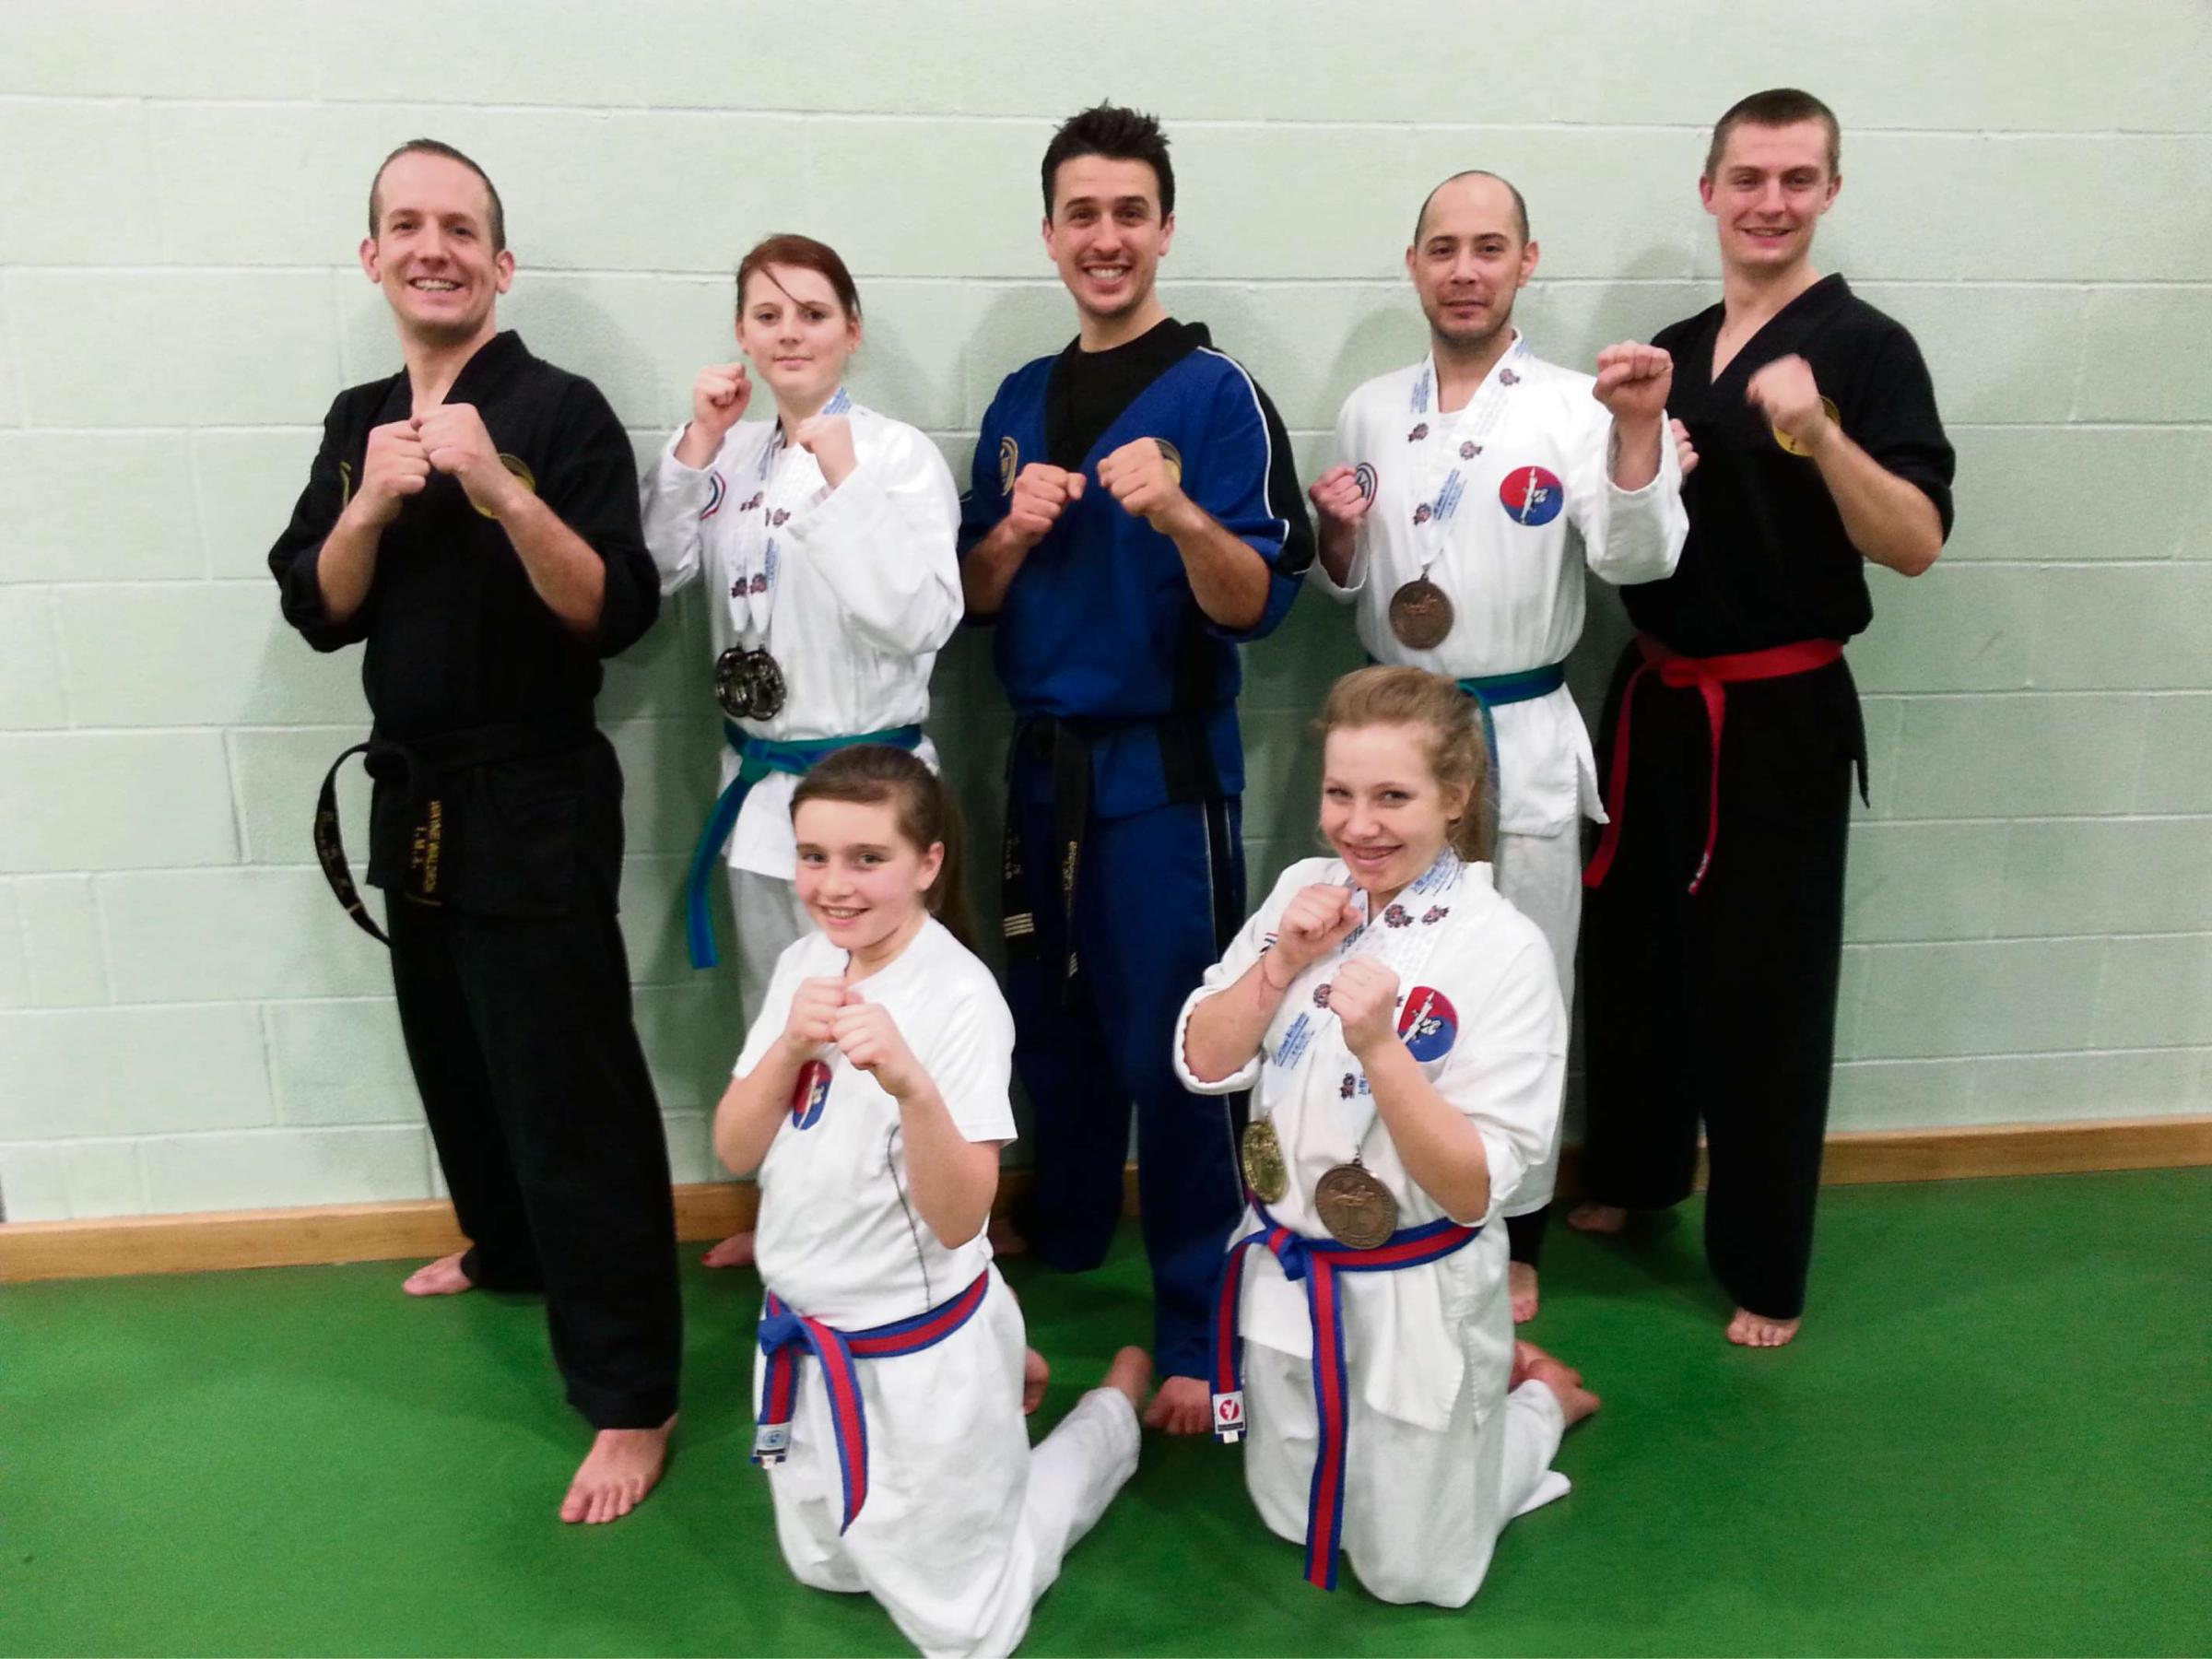 Some of the Page Family medallists, back row (left to right) squad coach Wayne Waldron, Ellie Morris Silver Sparring and Patterns, chief instructor Brennen Page, John Ande